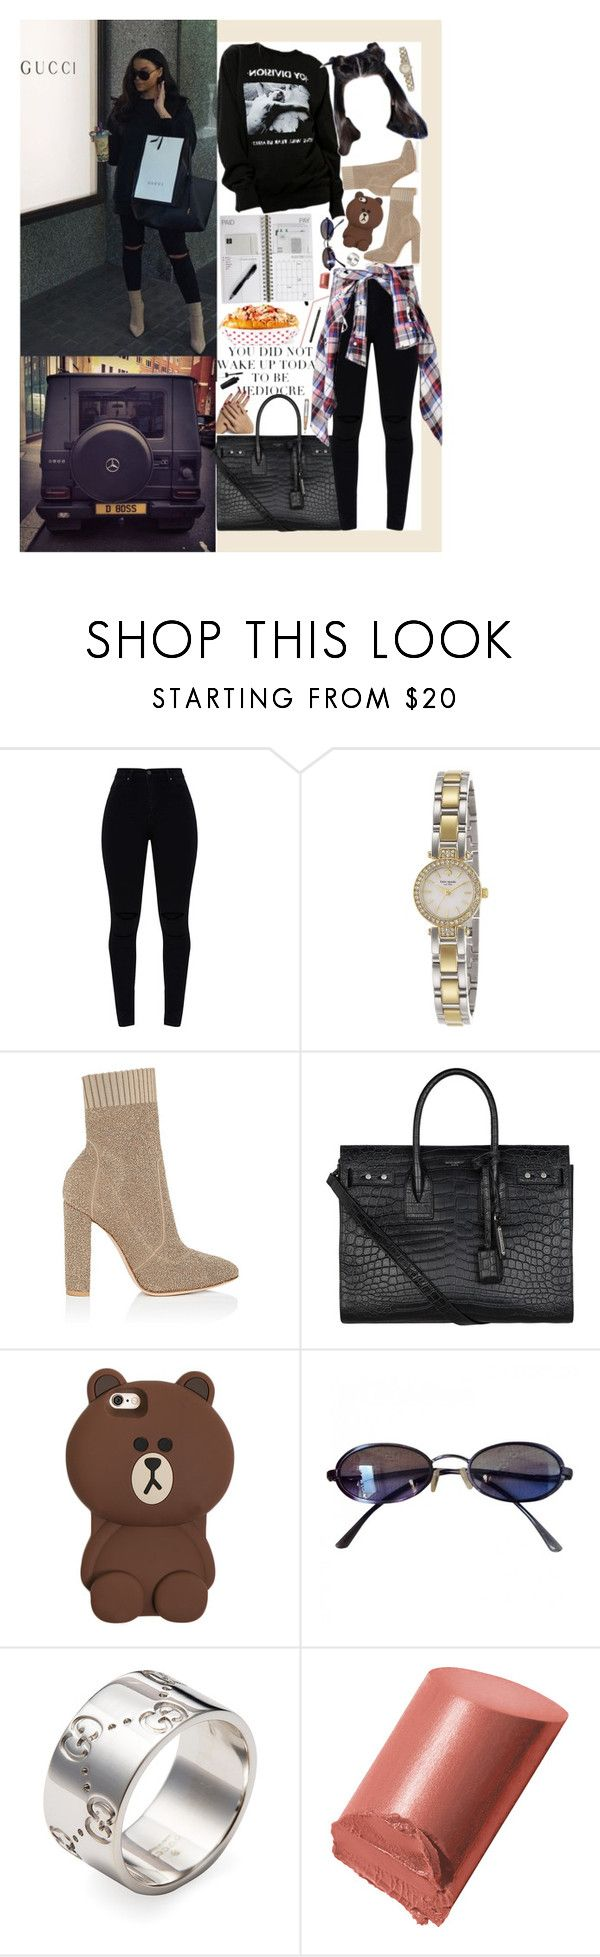 """December 26, 2017"" by alicia-rene ❤ liked on Polyvore featuring Kate Spade, Gianvito Rossi, Yves Saint Laurent, Fendi, Gucci, Bobbi Brown Cosmetics, Revlon and ULTA"